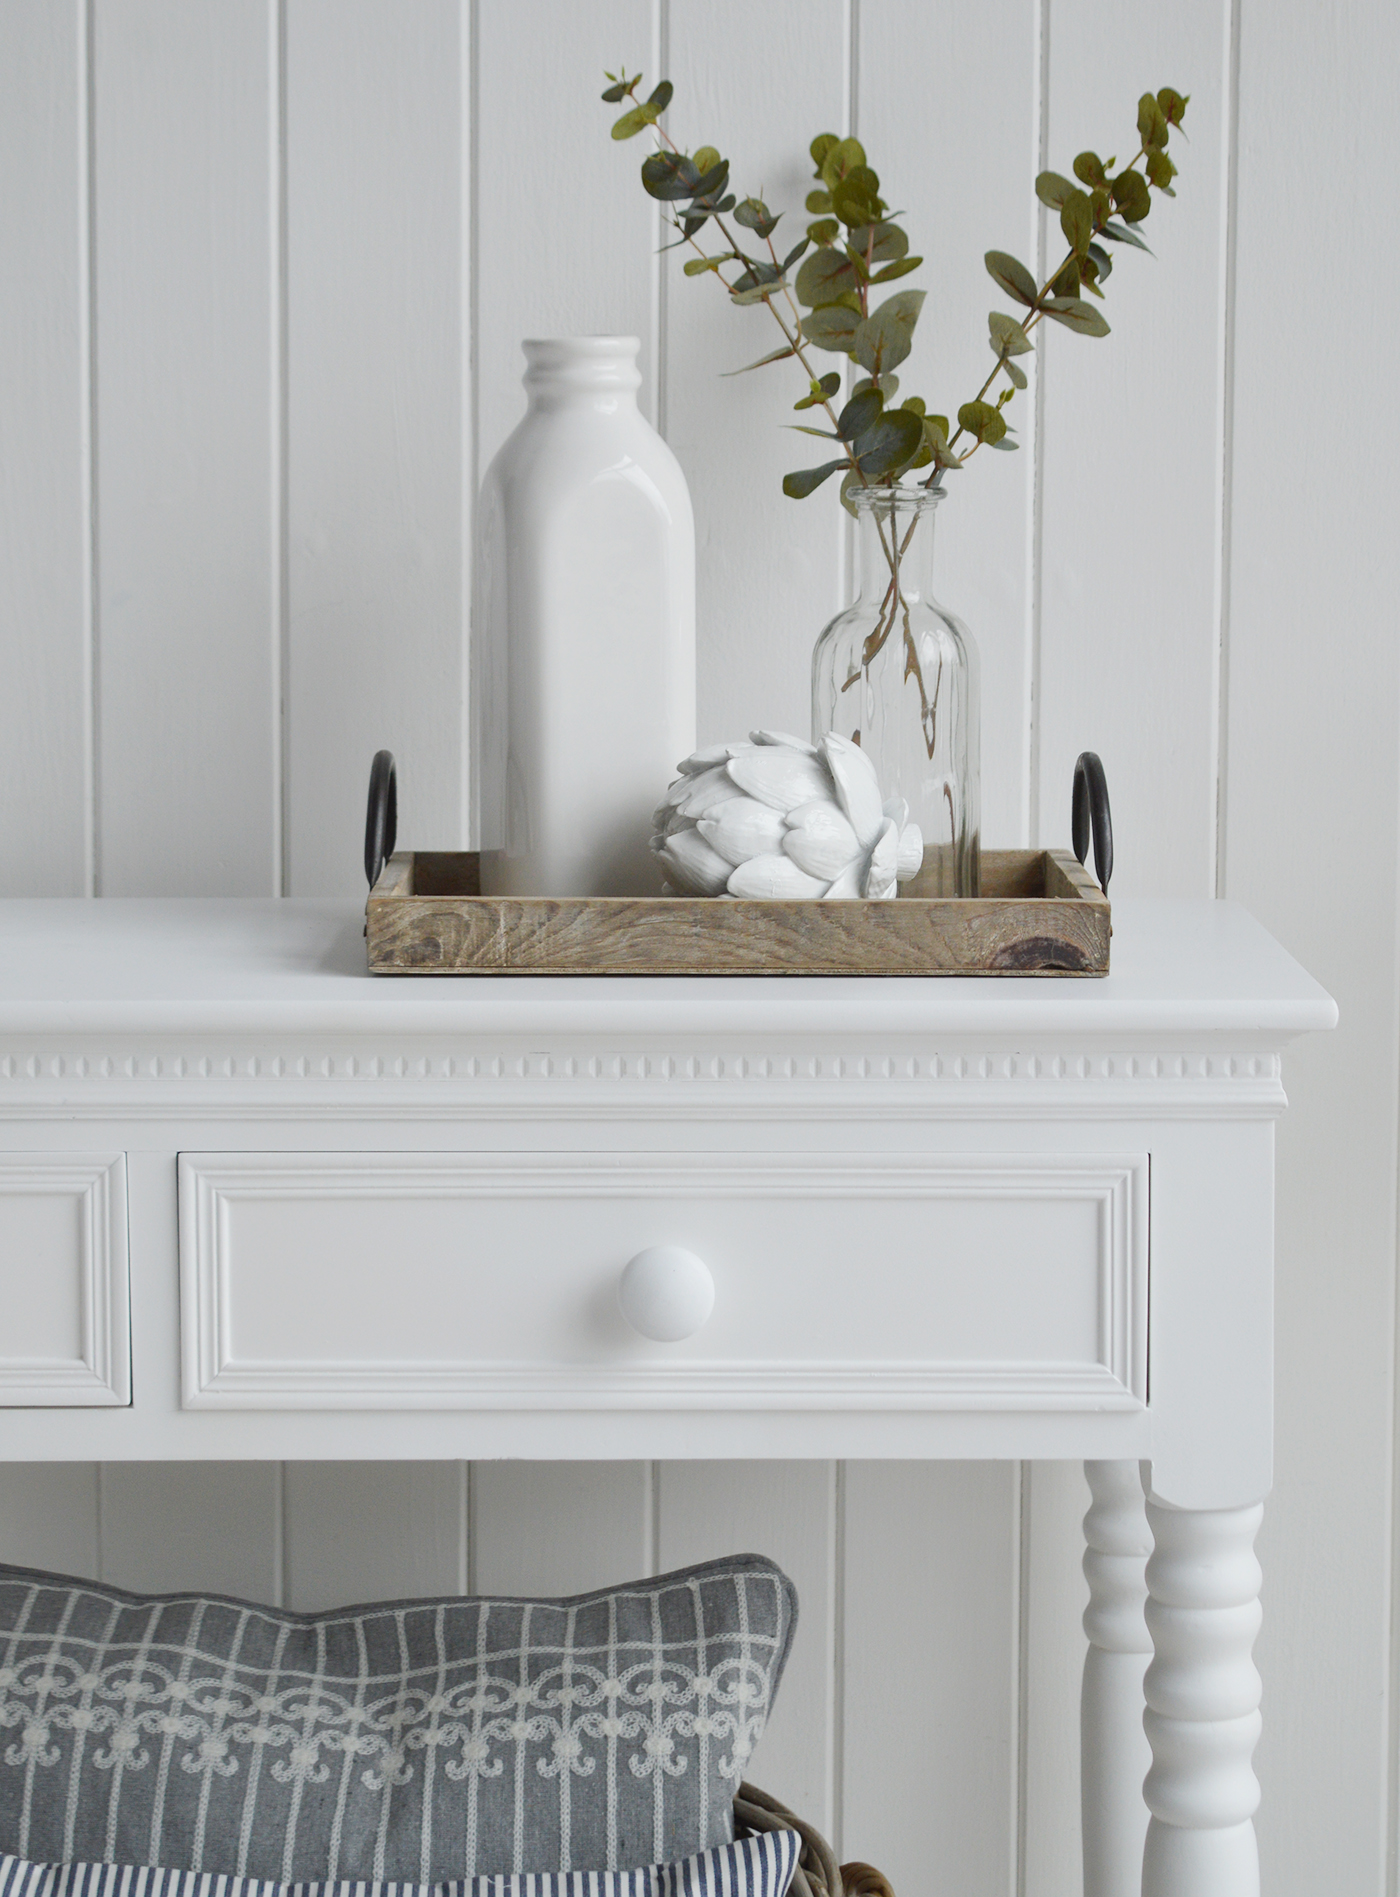 White Decorative Home Accessories and Decor for New England style interiors